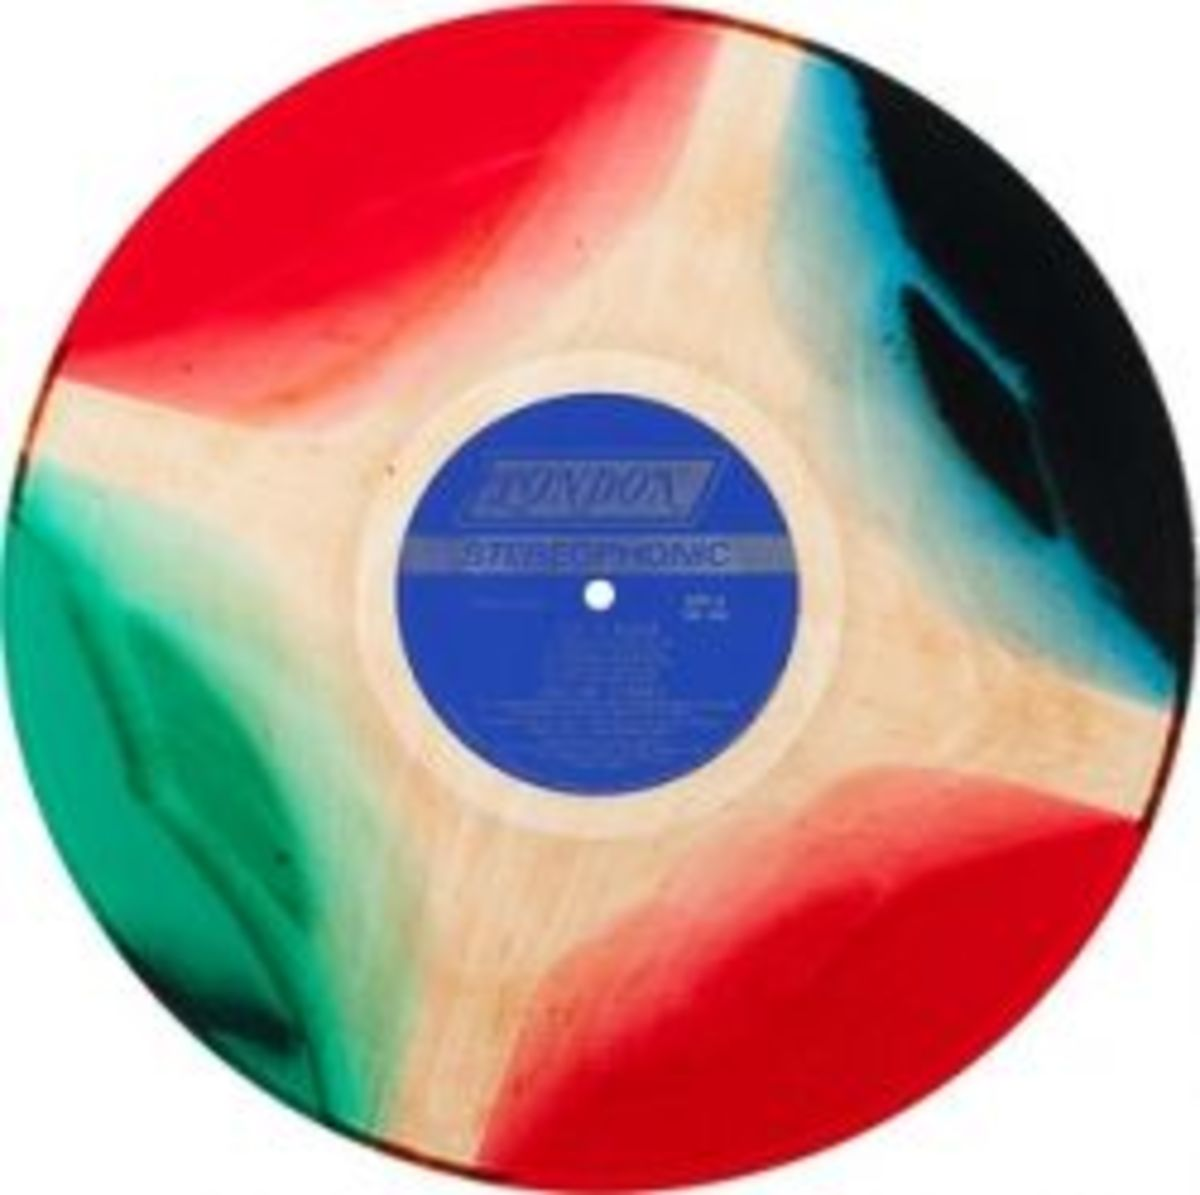 """Rolling Stones """"Let It Bleed"""" London Records NPS-4 Vintage Swirled Marble Red White and Blue Vinyl Record"""